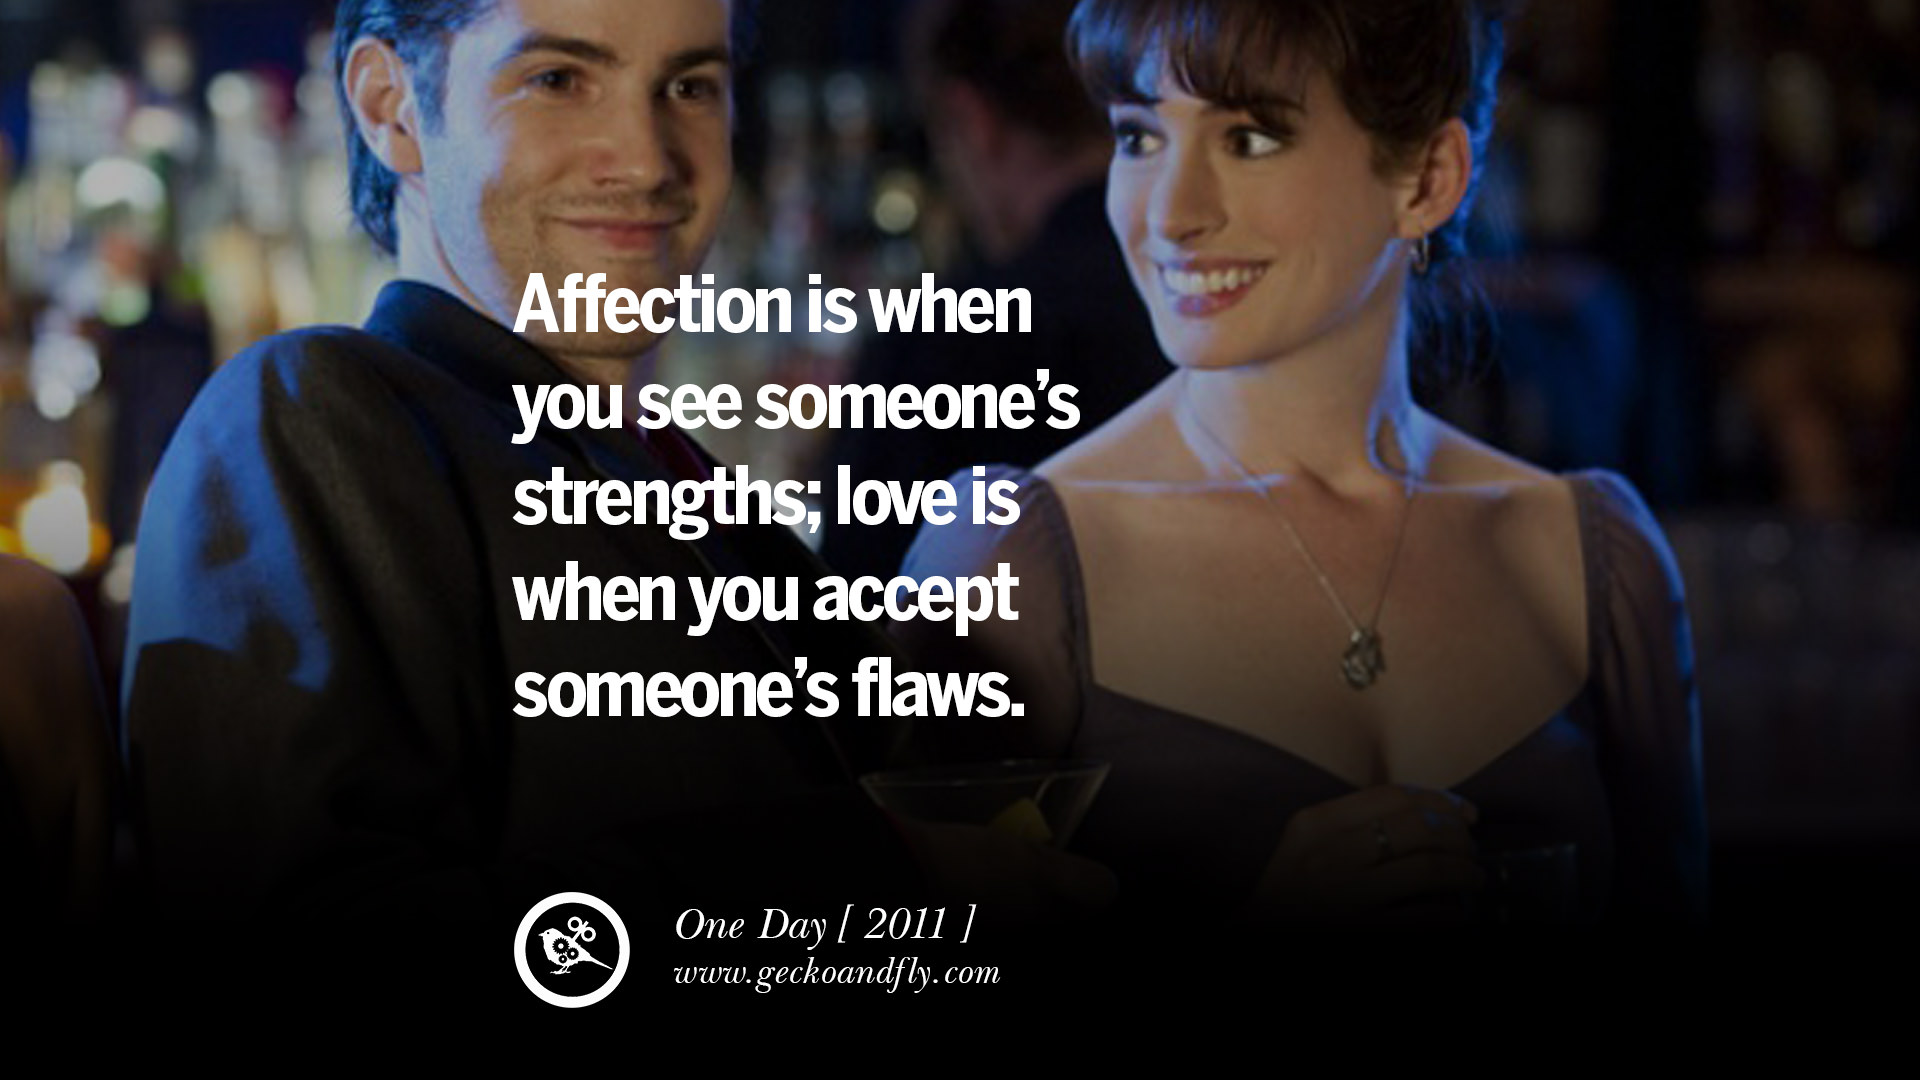 Famous Phrases About Life 20 Famous Movie Quotes On Love Life Relationship Friends And